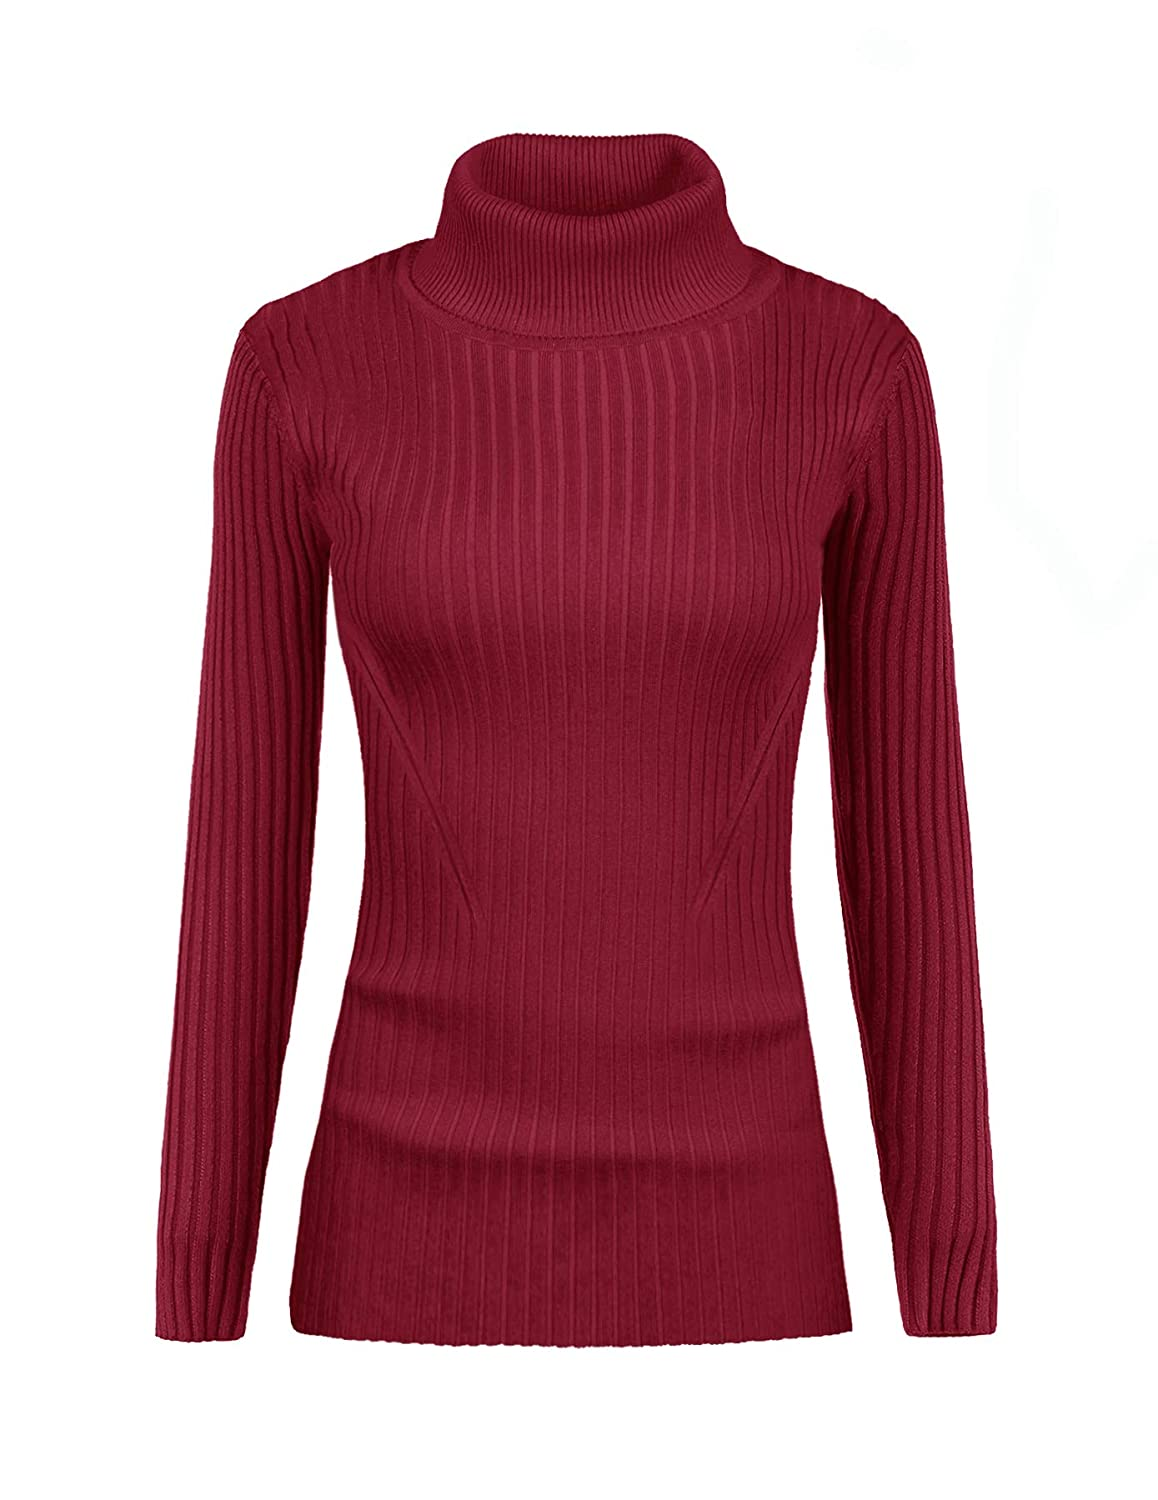 v28 Women's Sleeveless Ribbed High Neck Turtleneck Stretchable Knit Sweater Top